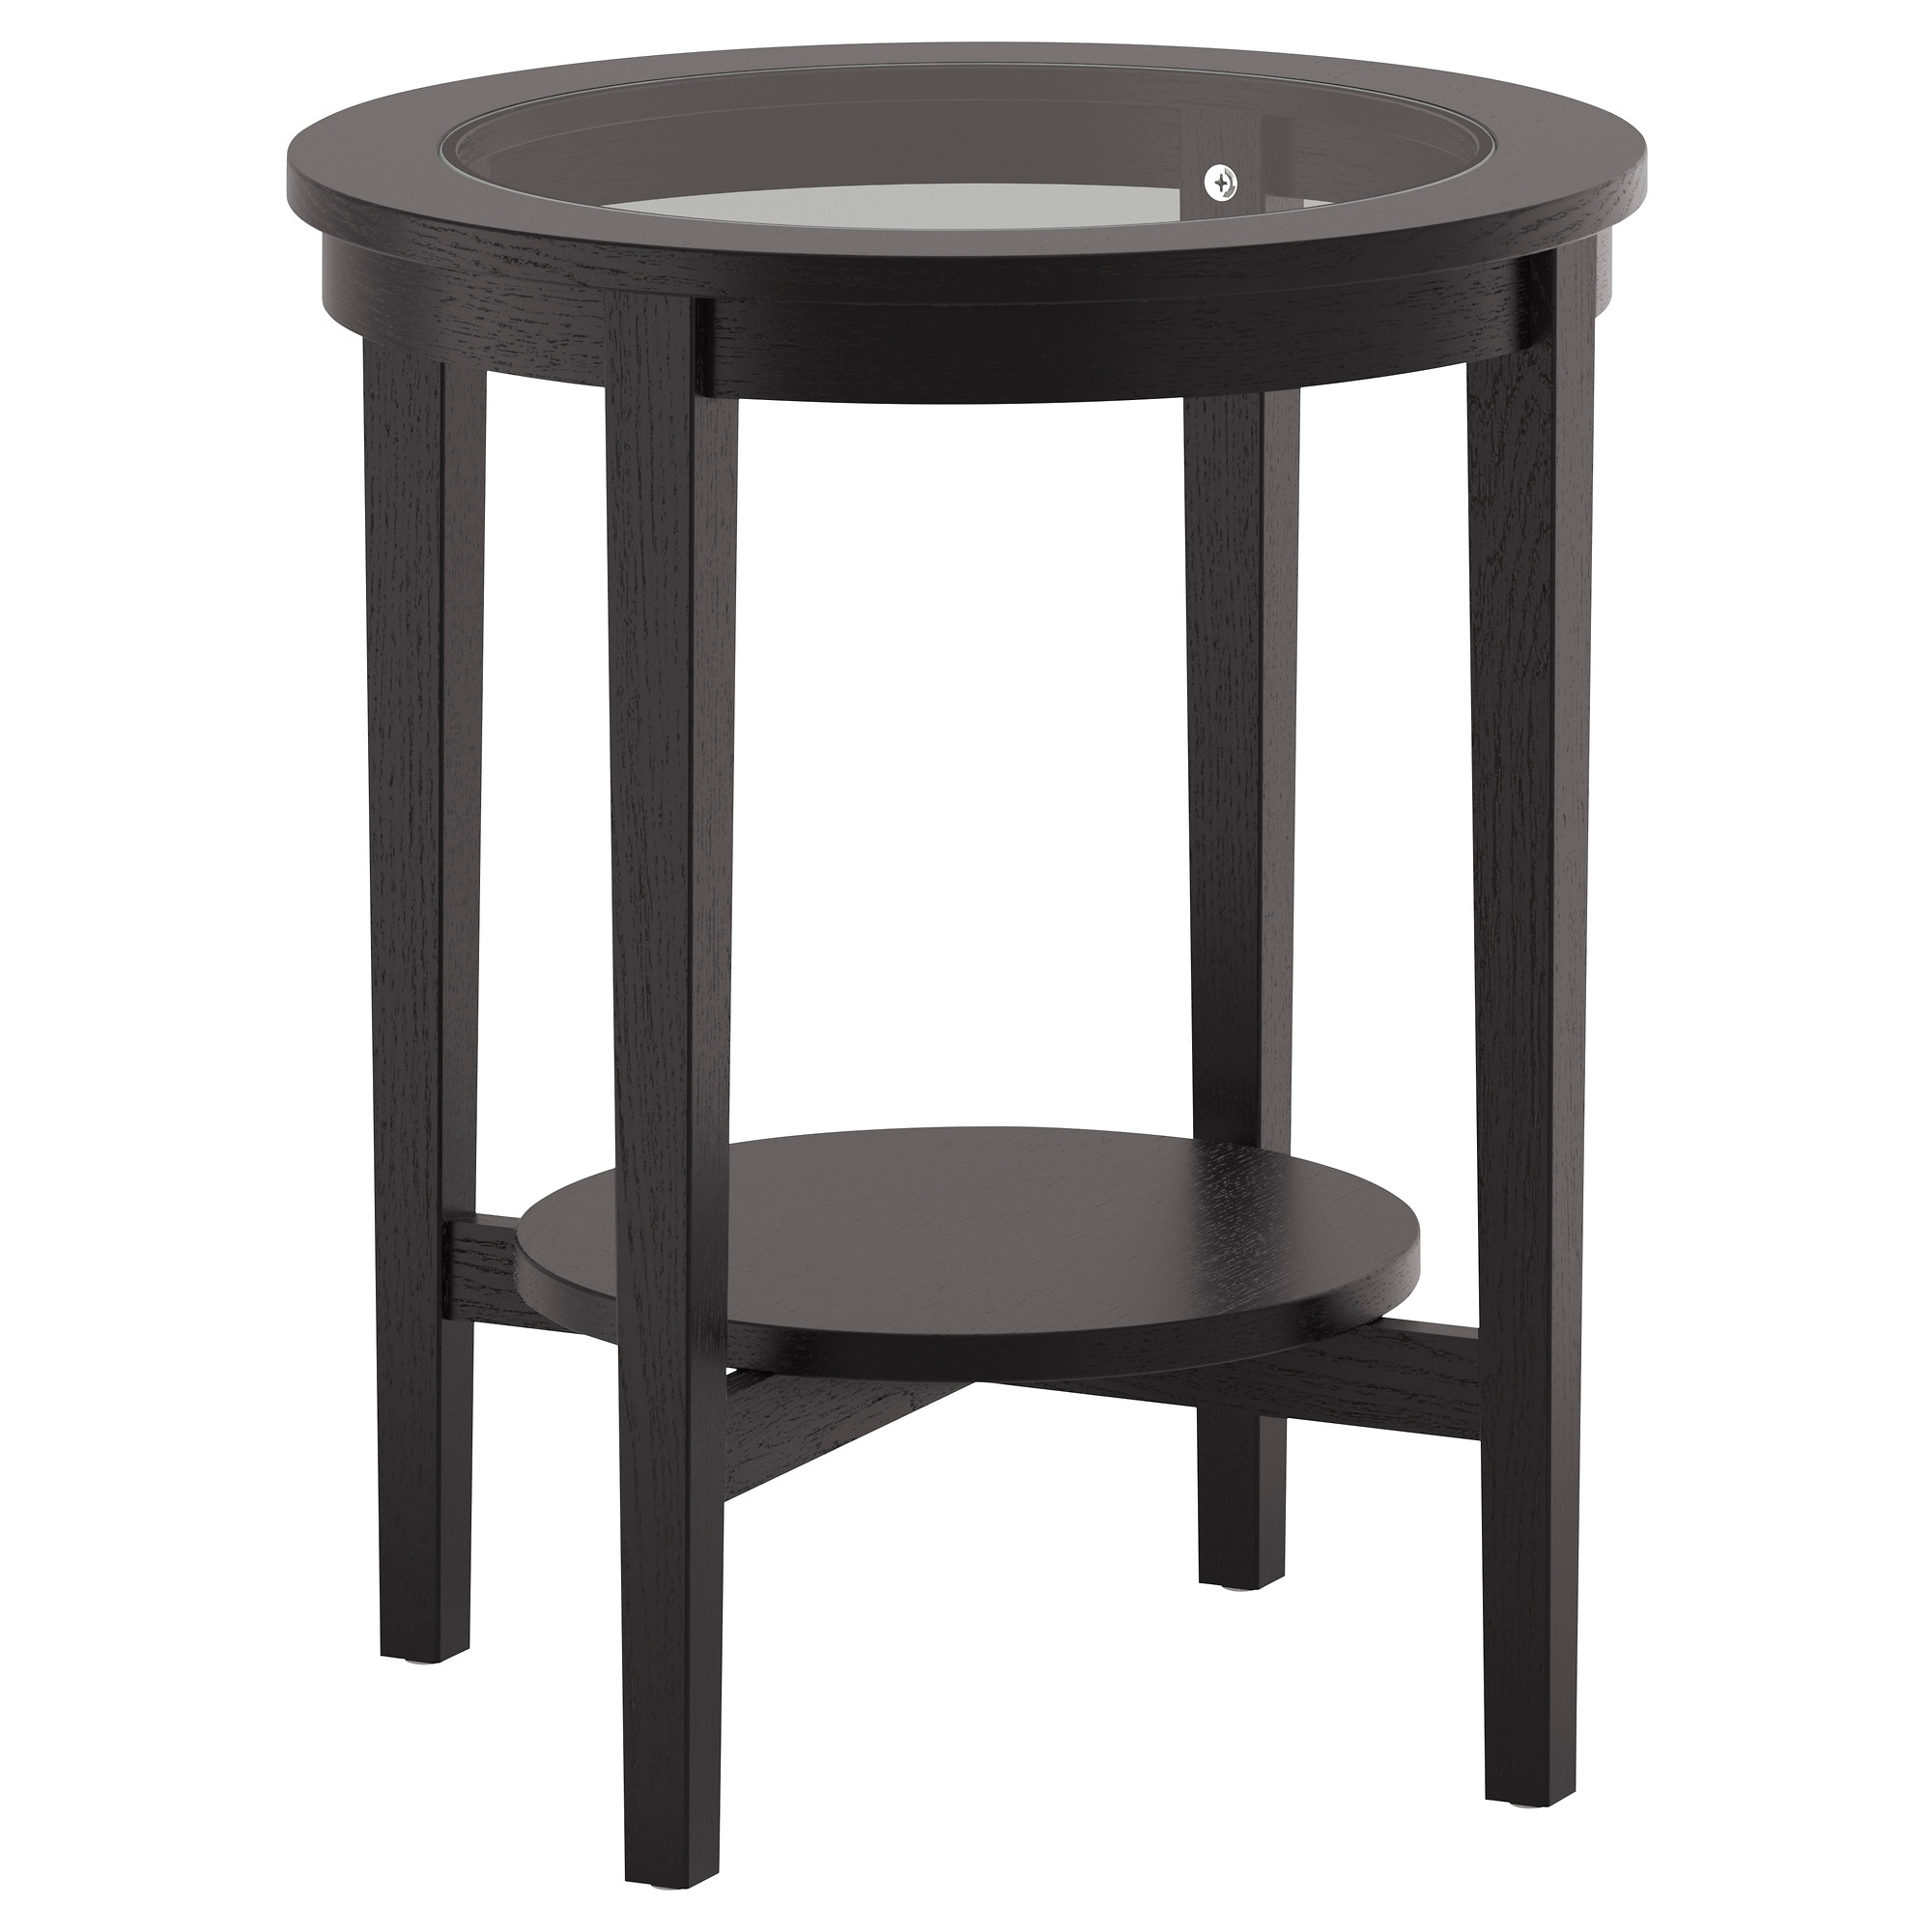 coffee table clipart black and white. malmsta side table, black-brown height: 24 3/4 \ coffee table clipart black and white